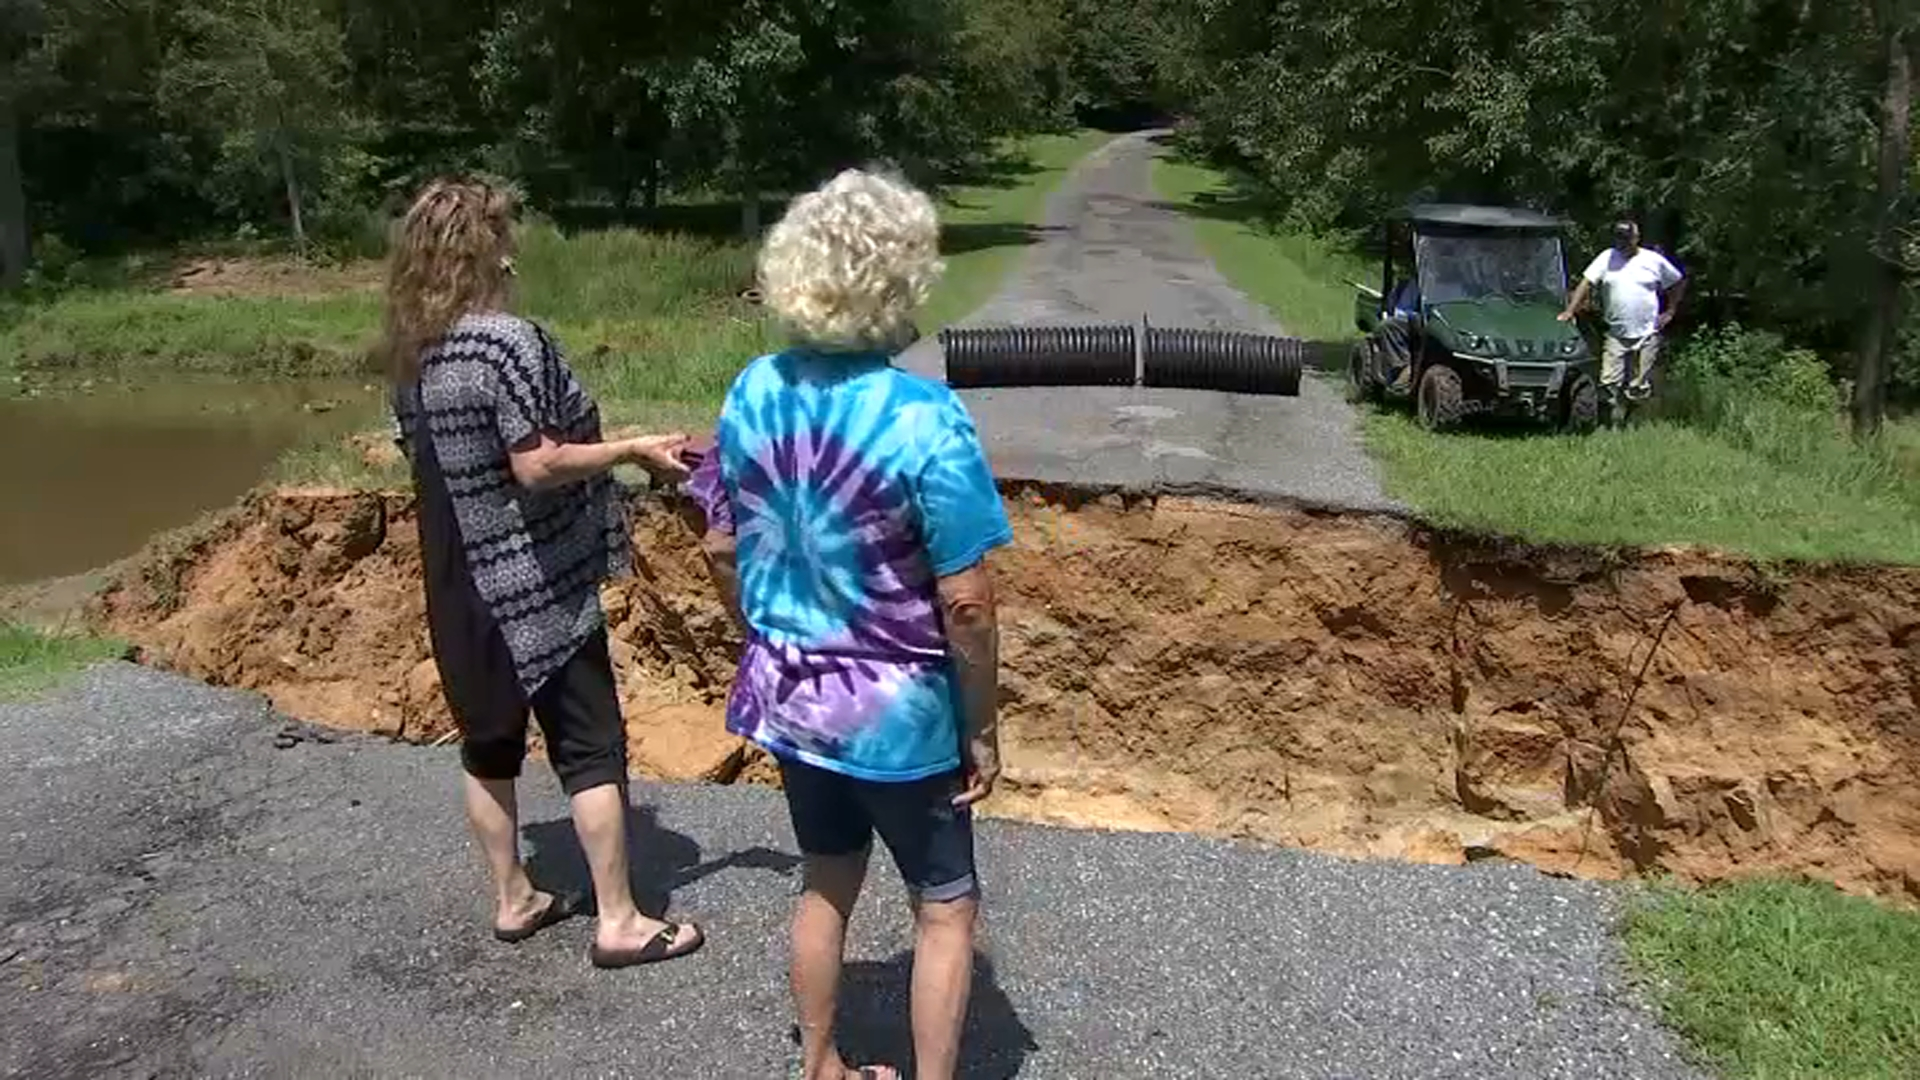 Some Calvert County Residents Still Stranded Due to Storm Damage